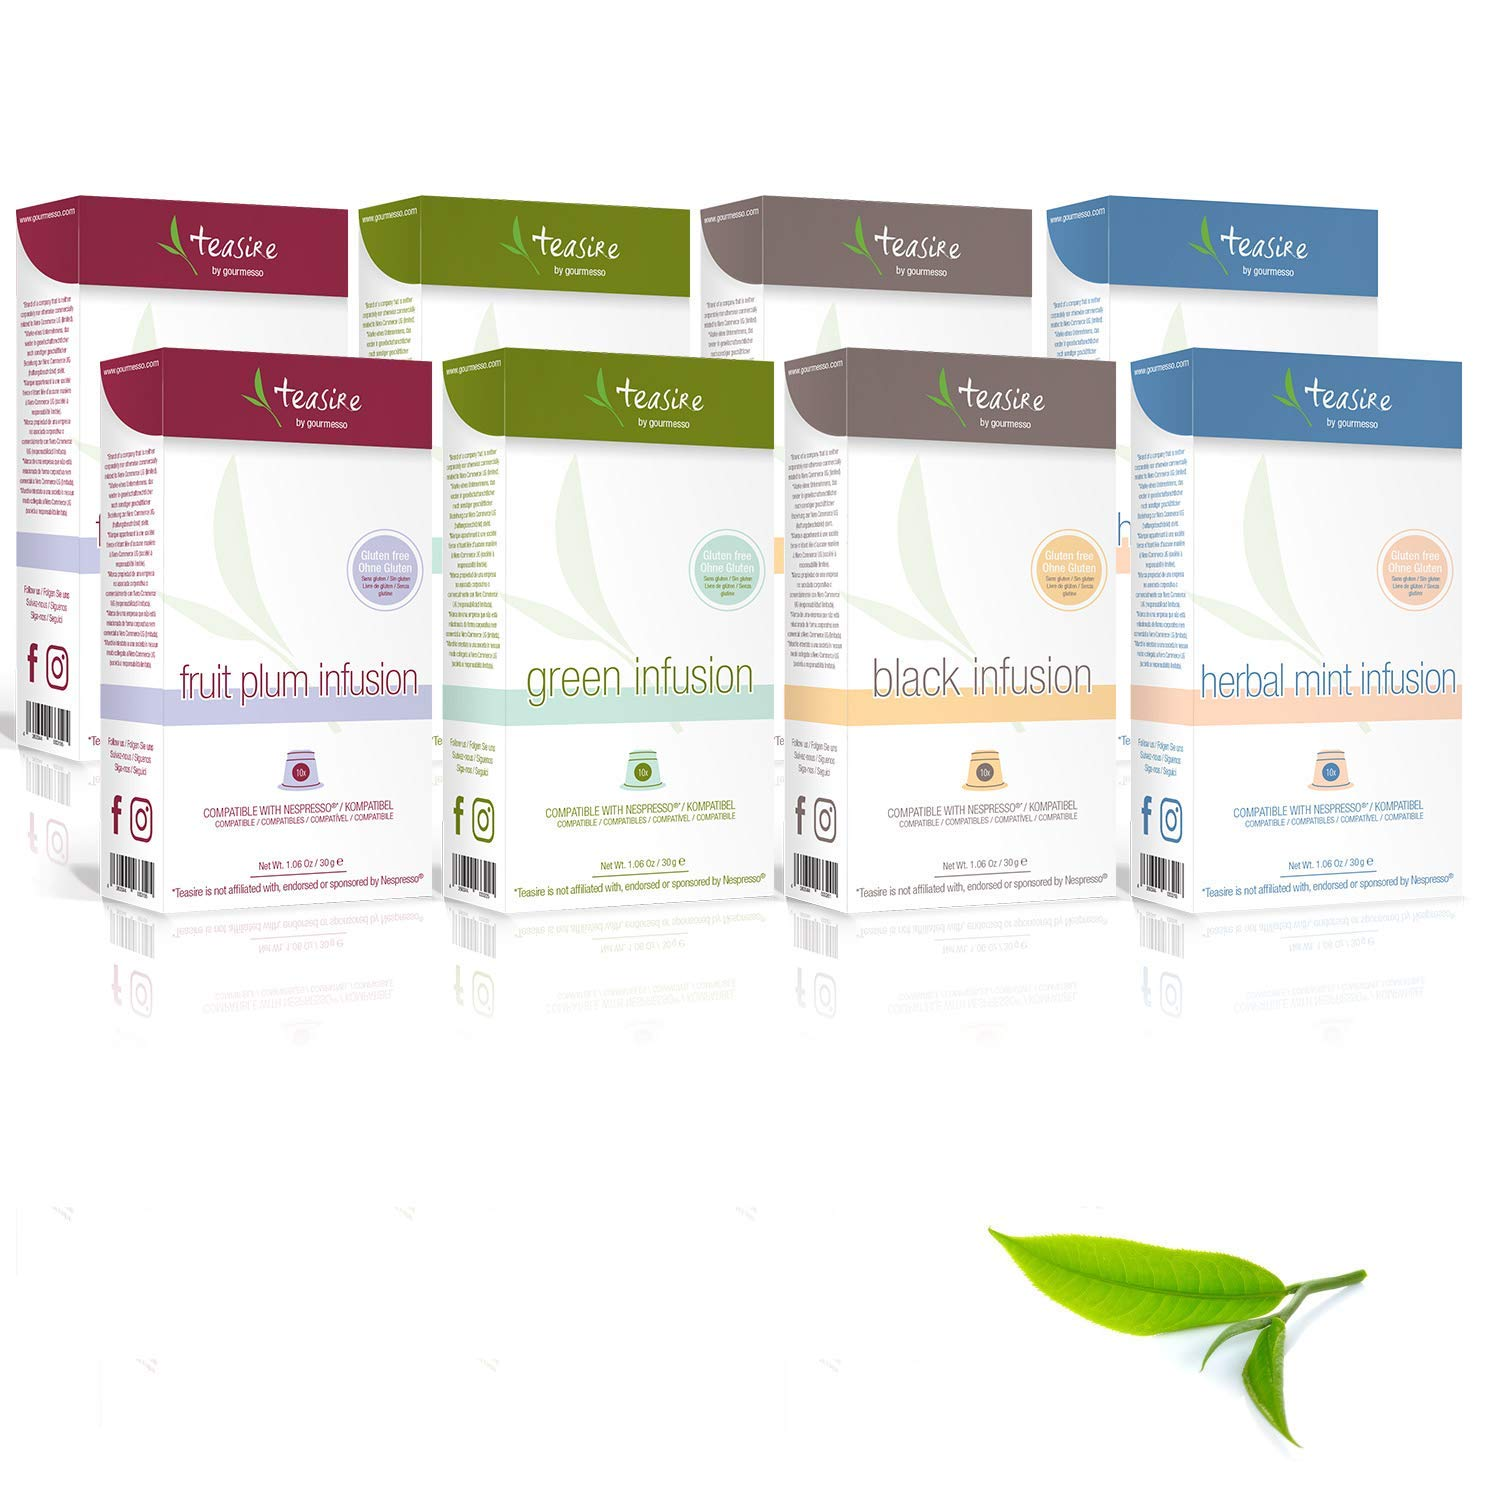 Gourmesso Infusion Bundle - 80 Nespresso Compatible Tea Capsules | Includes Green Tea, Black Tea, Mint Herbal Tea, and Plum Fruit Tea Pods